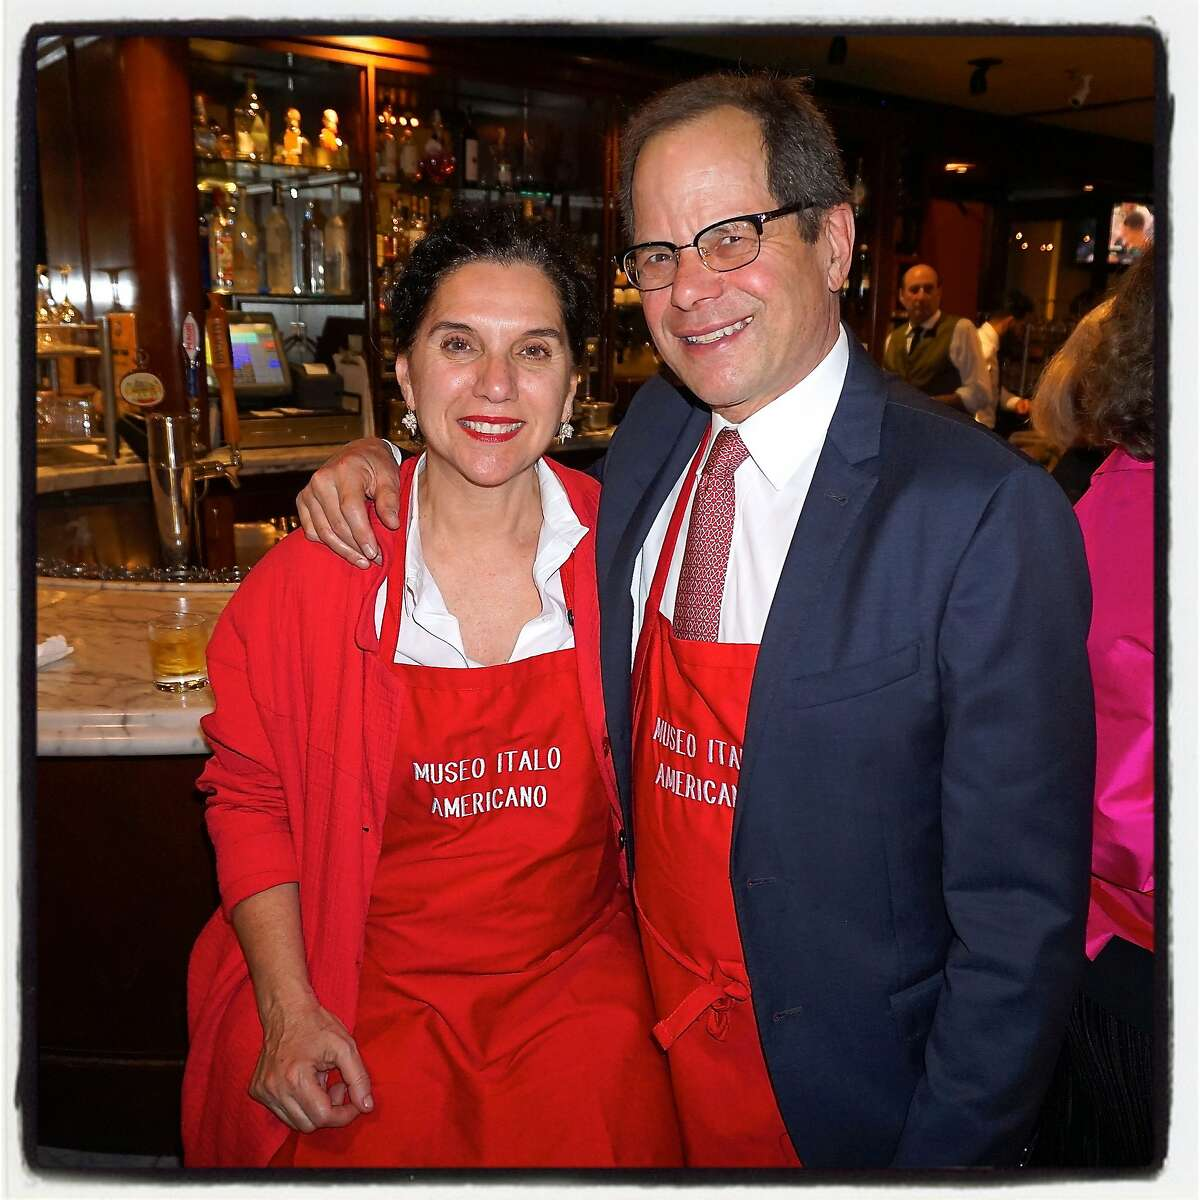 Teresa Pantaleo and her husband, SFJAZZ founder Randall Kline received an Honorable Mention for his wife's Pasta with Chickpeas recipe at the Museo Italo Americano Pasta Cook-Off at Il Fornaio. March 2016.